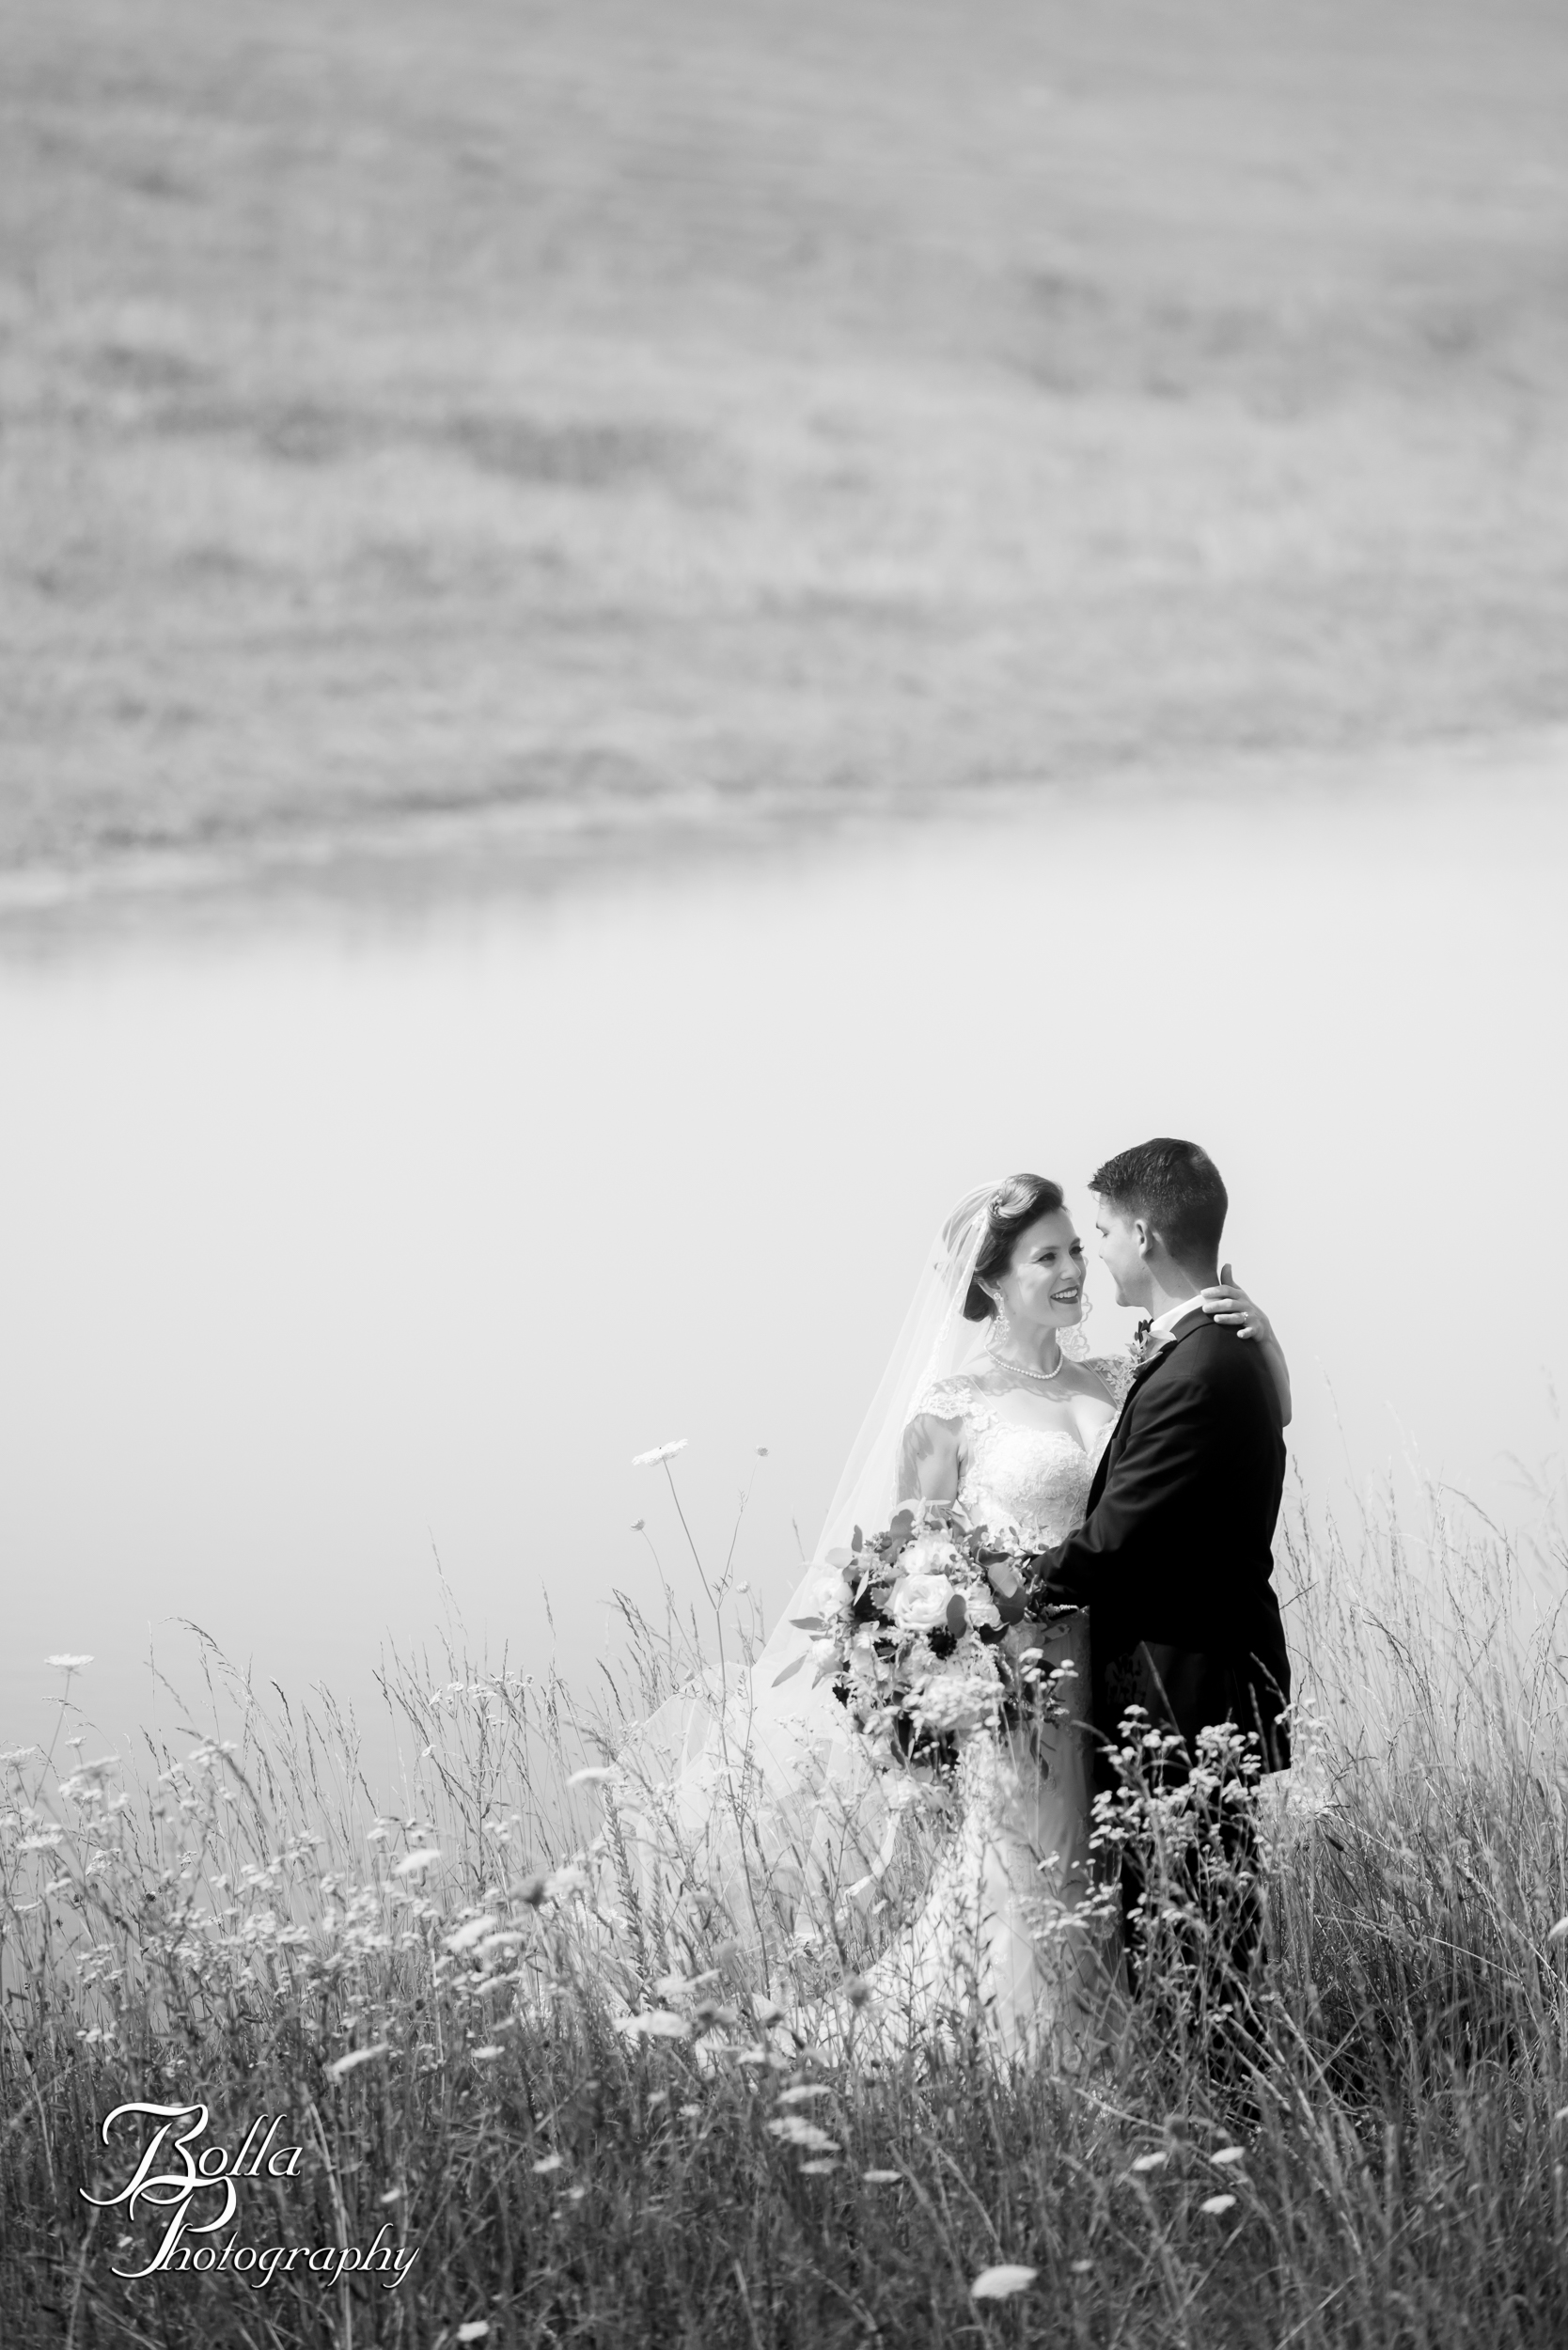 Bolla_photography_edwardsville_wedding_photographer_st_louis_weddings_Chaumette_winery_Mikusch-0231.jpg